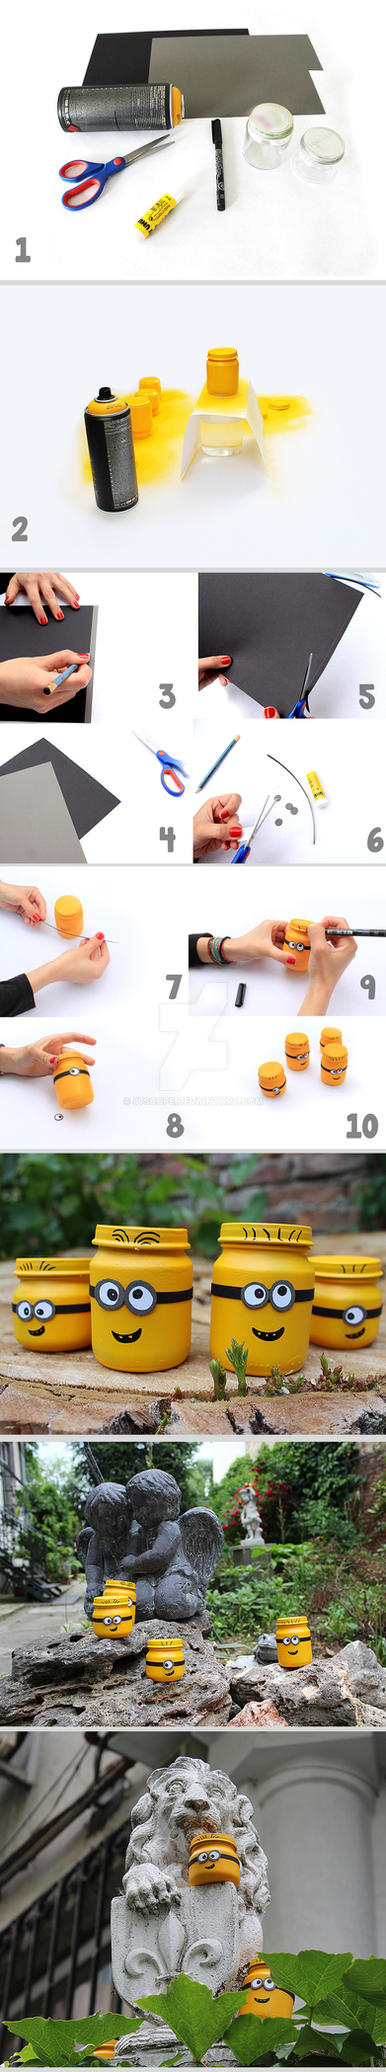 Tutorial: how to make minions from jars